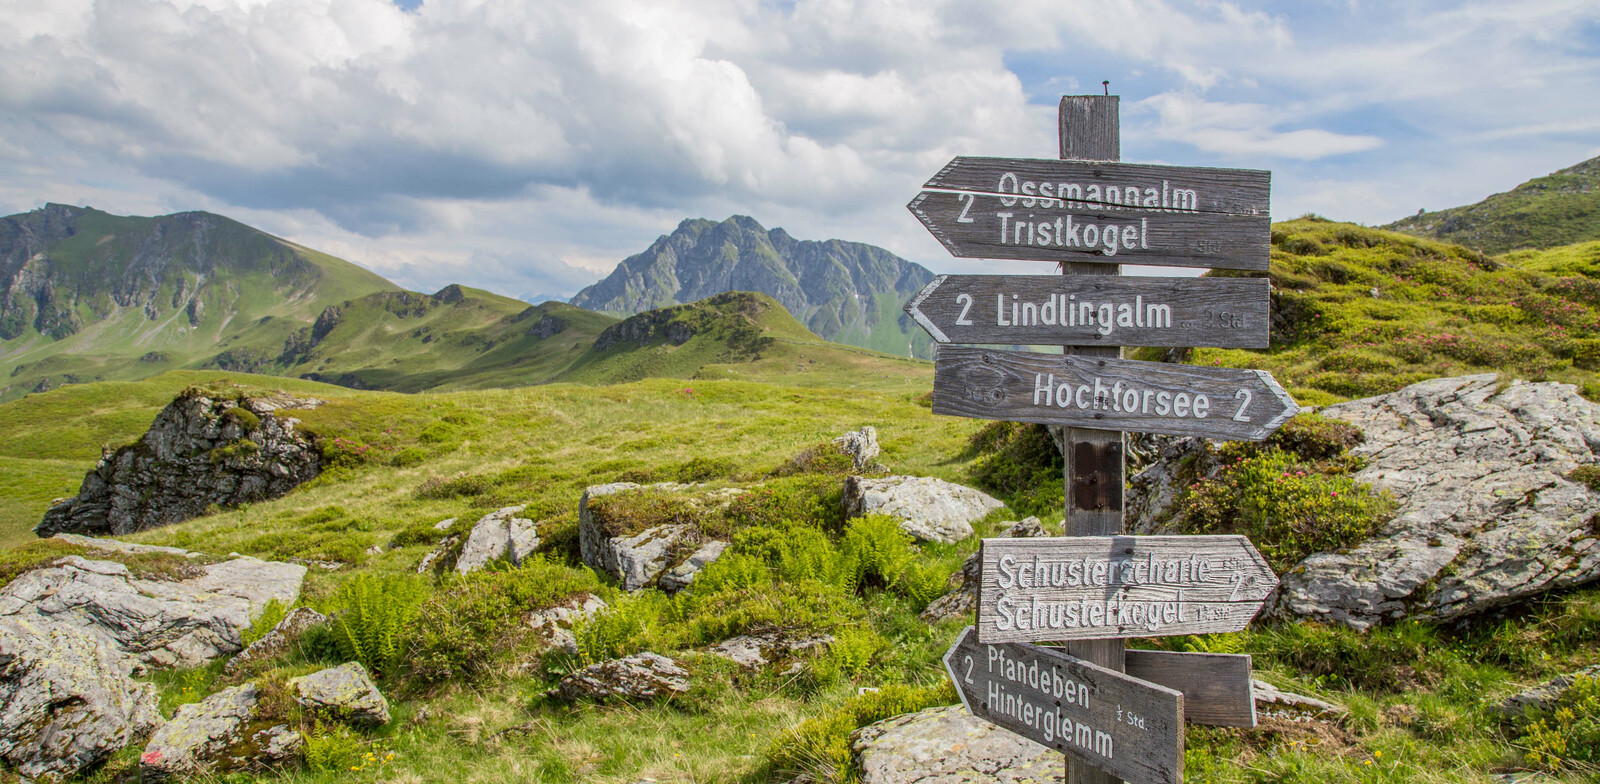 Signpost close to Hochtorsee. | © Thorsten Günthert